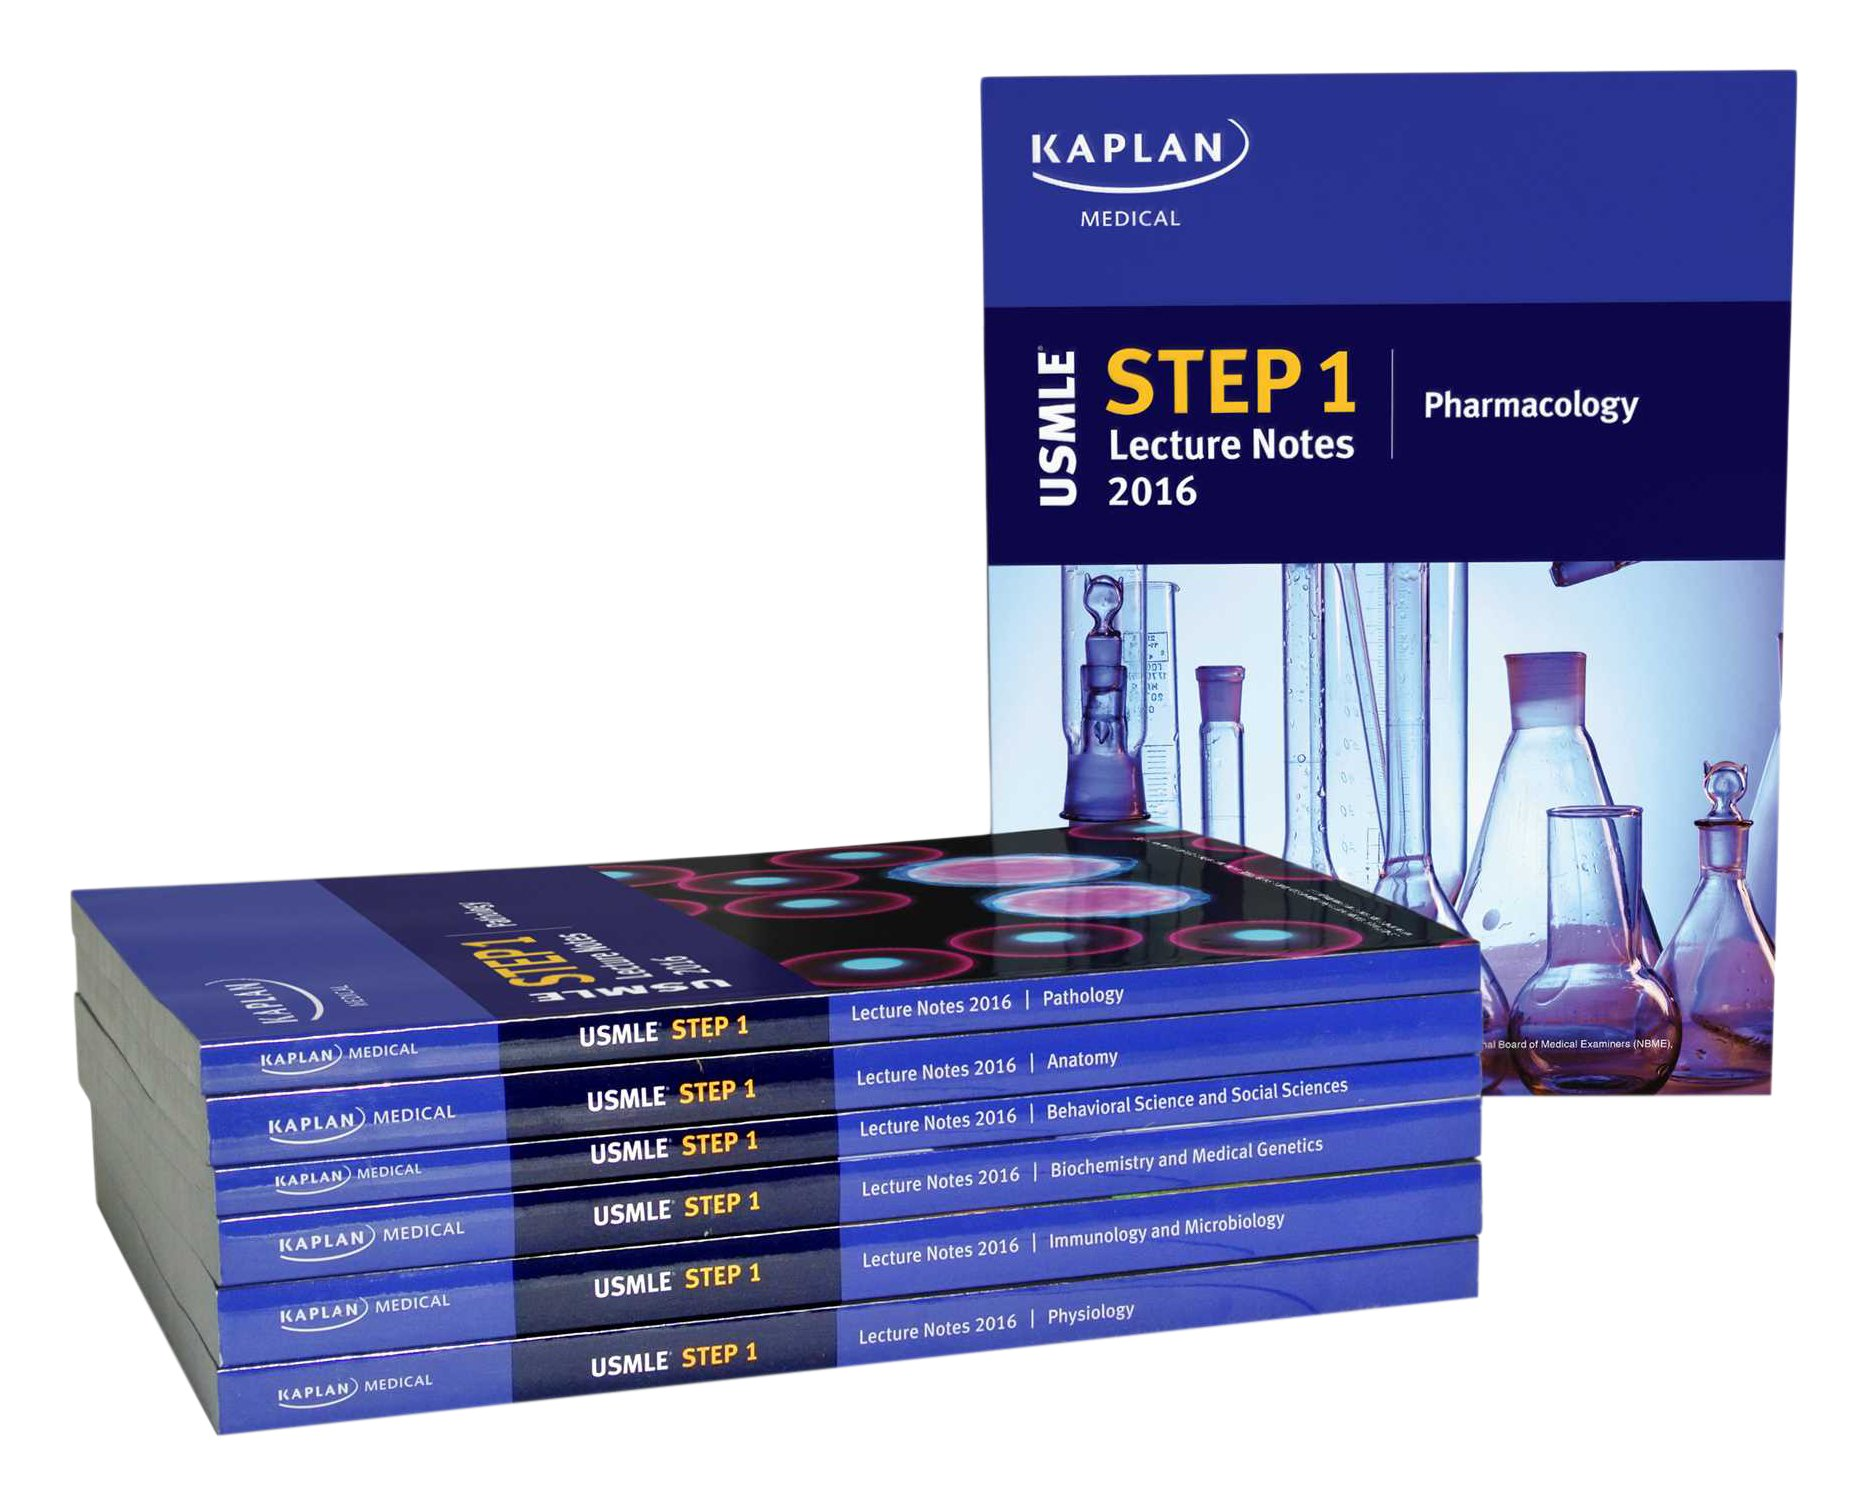 Kaplan Pathology Pdf